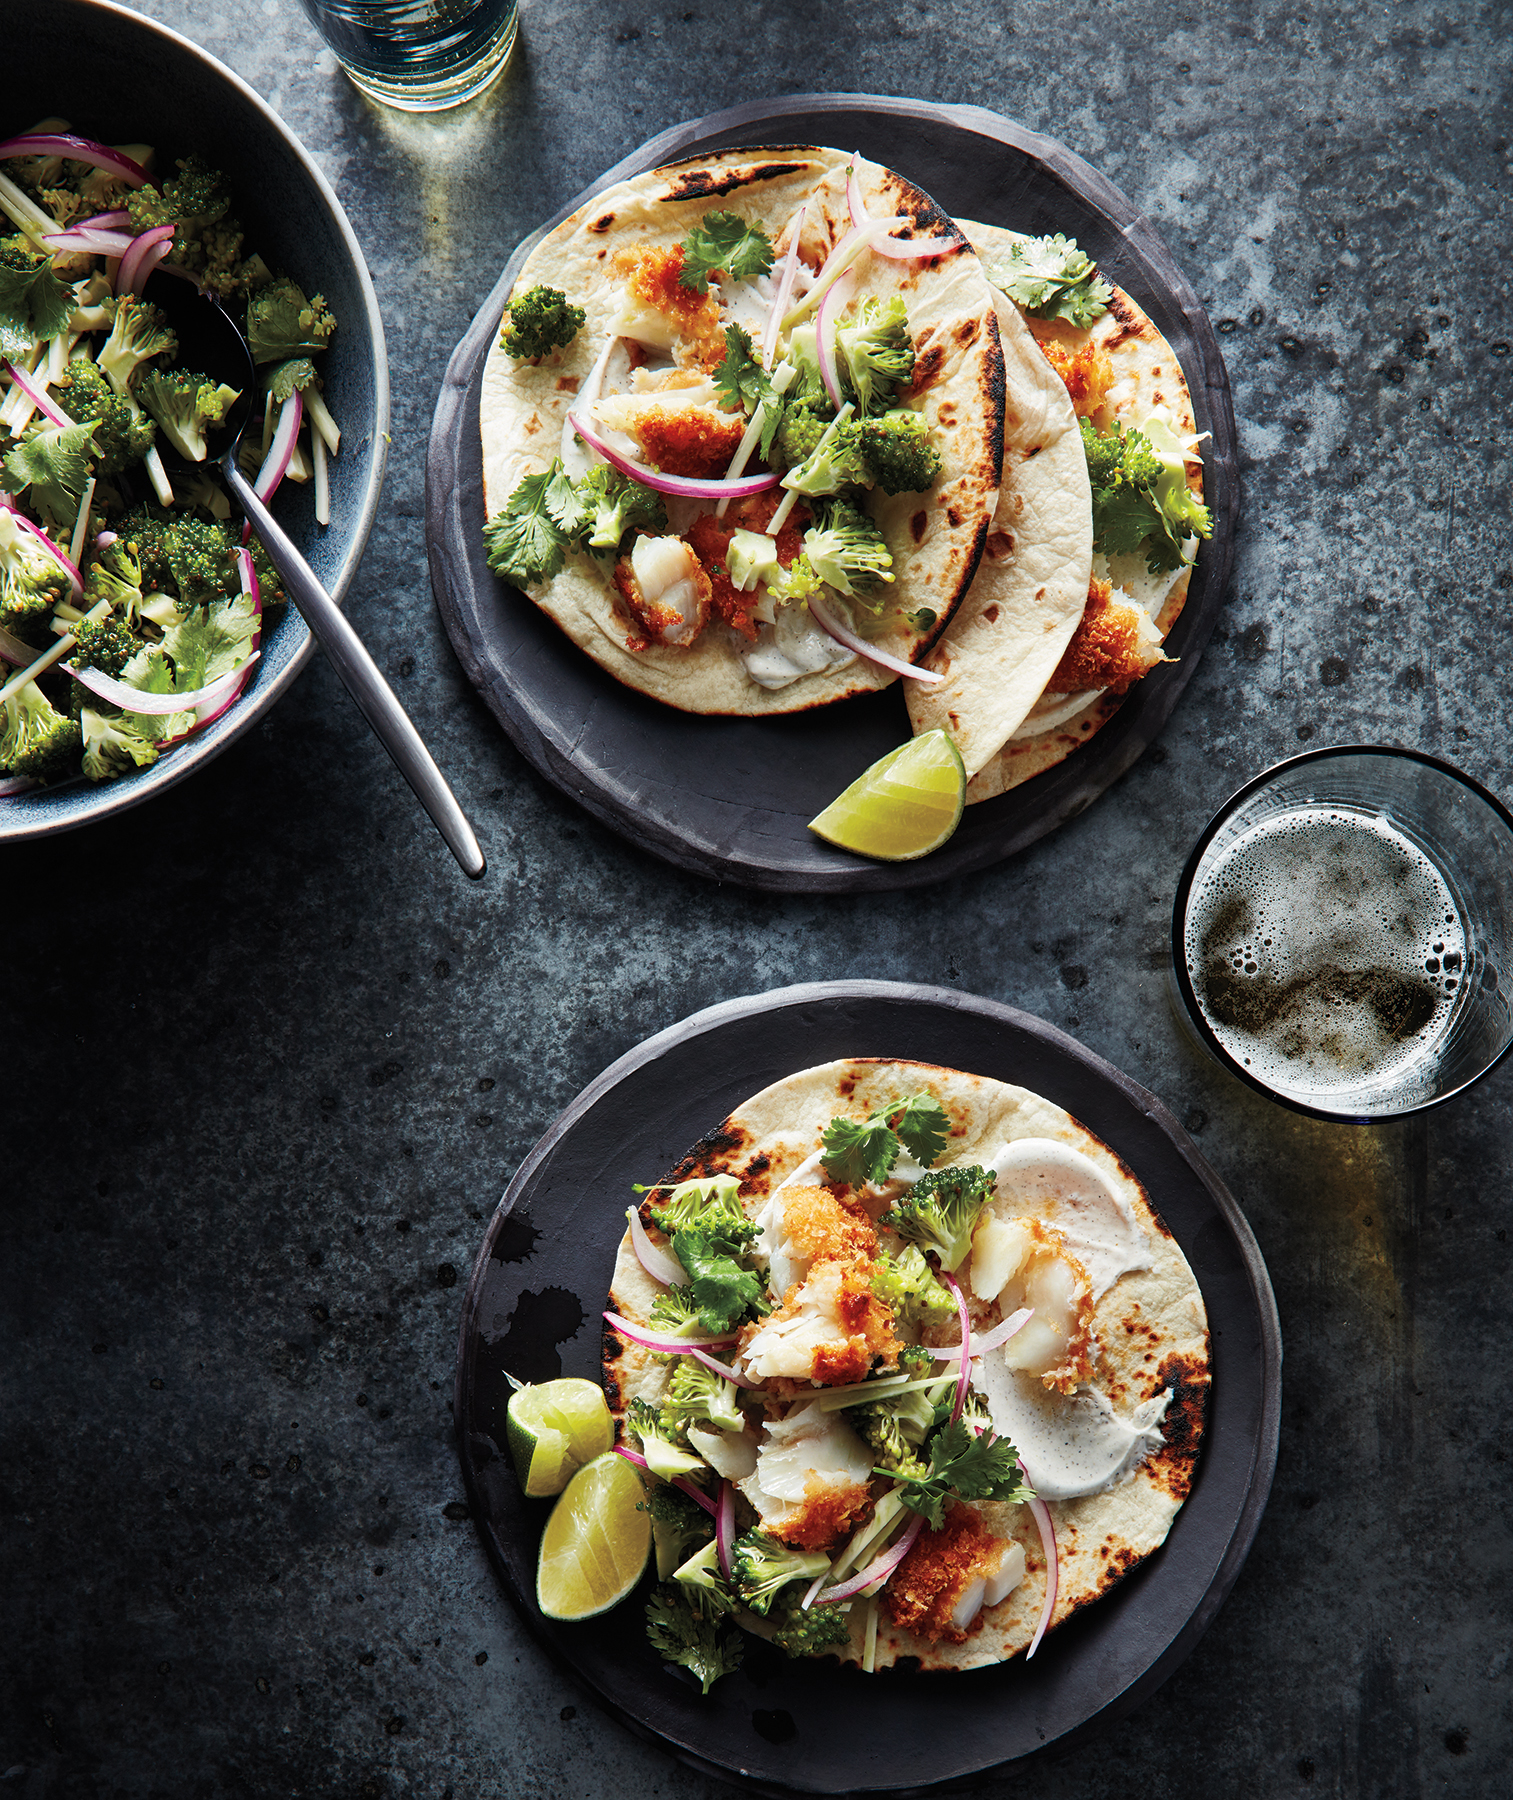 Fish Tacos With Broccoli Slaw and Cumin Sour Cream